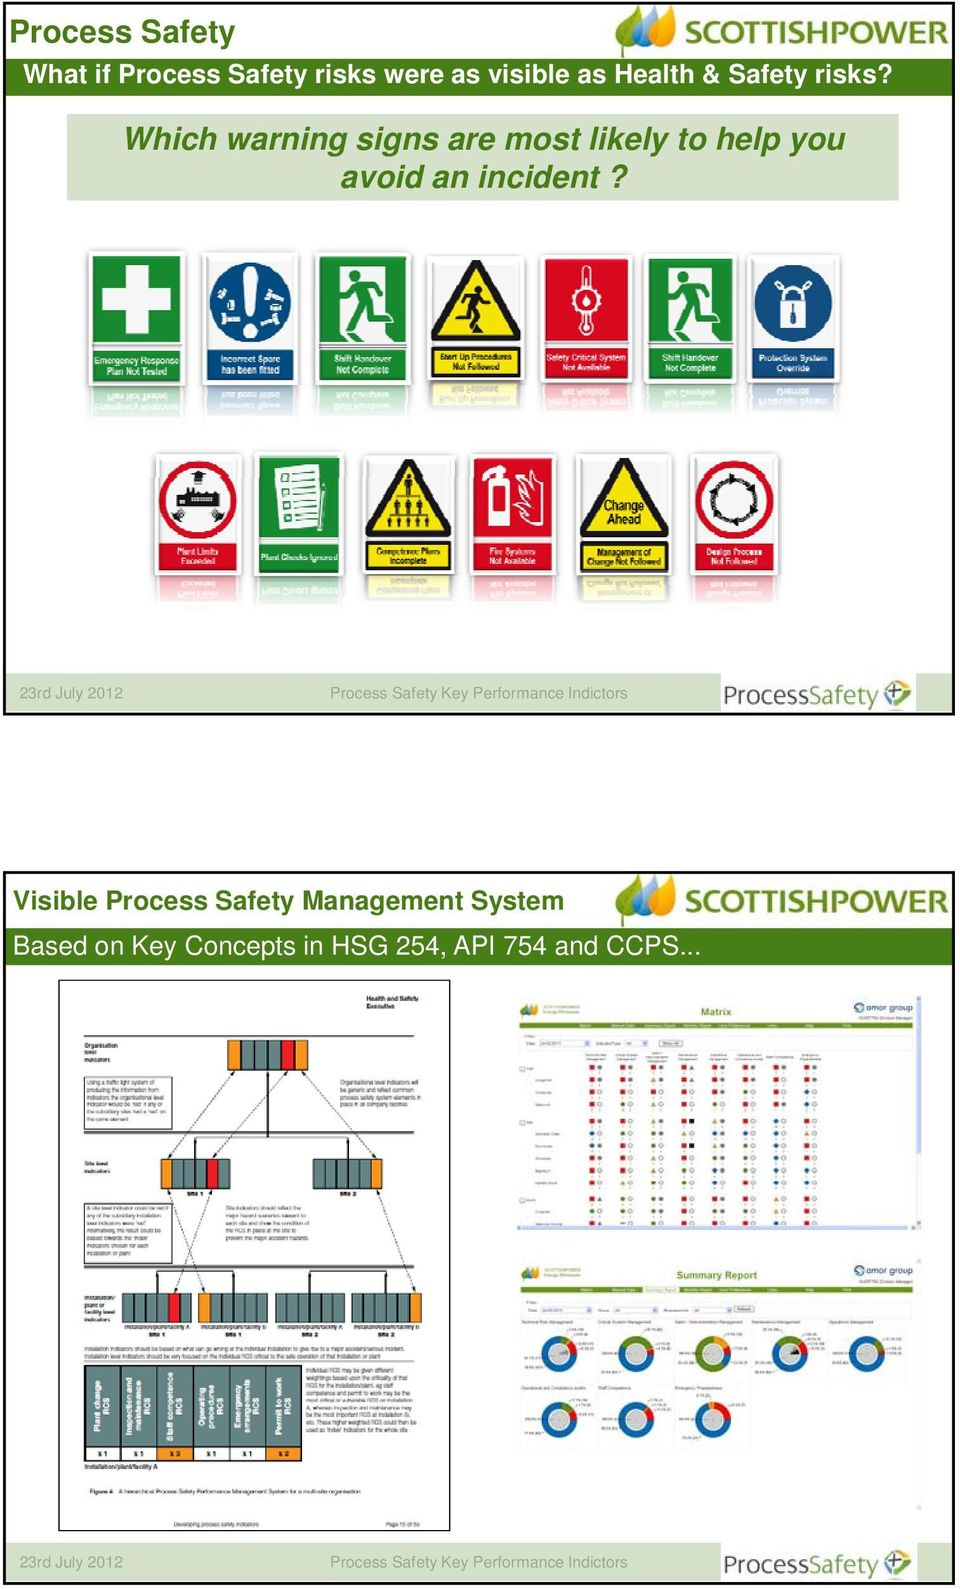 Visible Safety Management System Based on Key Concepts in HSG 254,